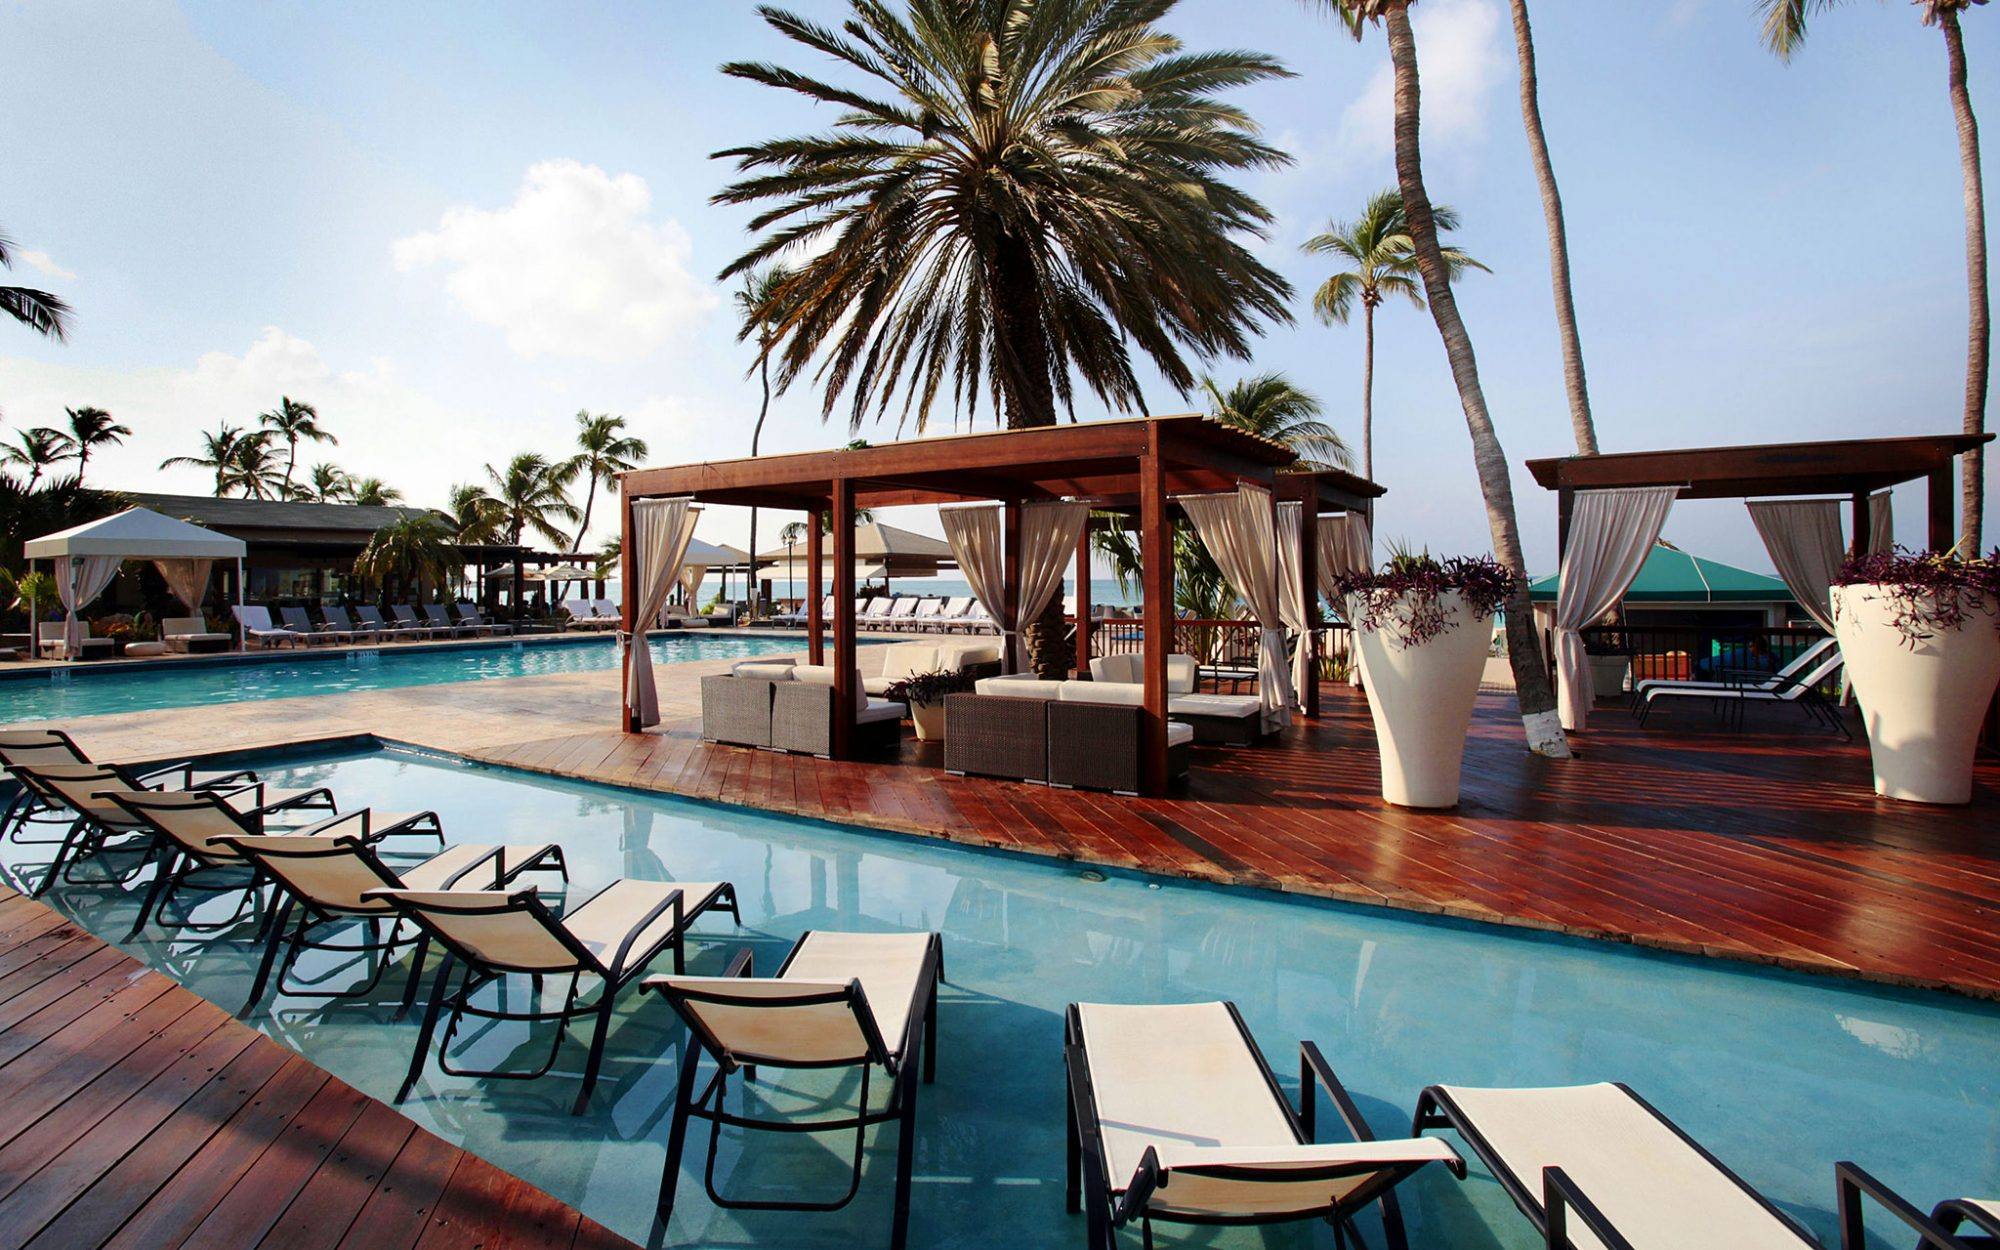 706dac3f4dfce The Best Affordable All-Inclusive Resorts for Vacation